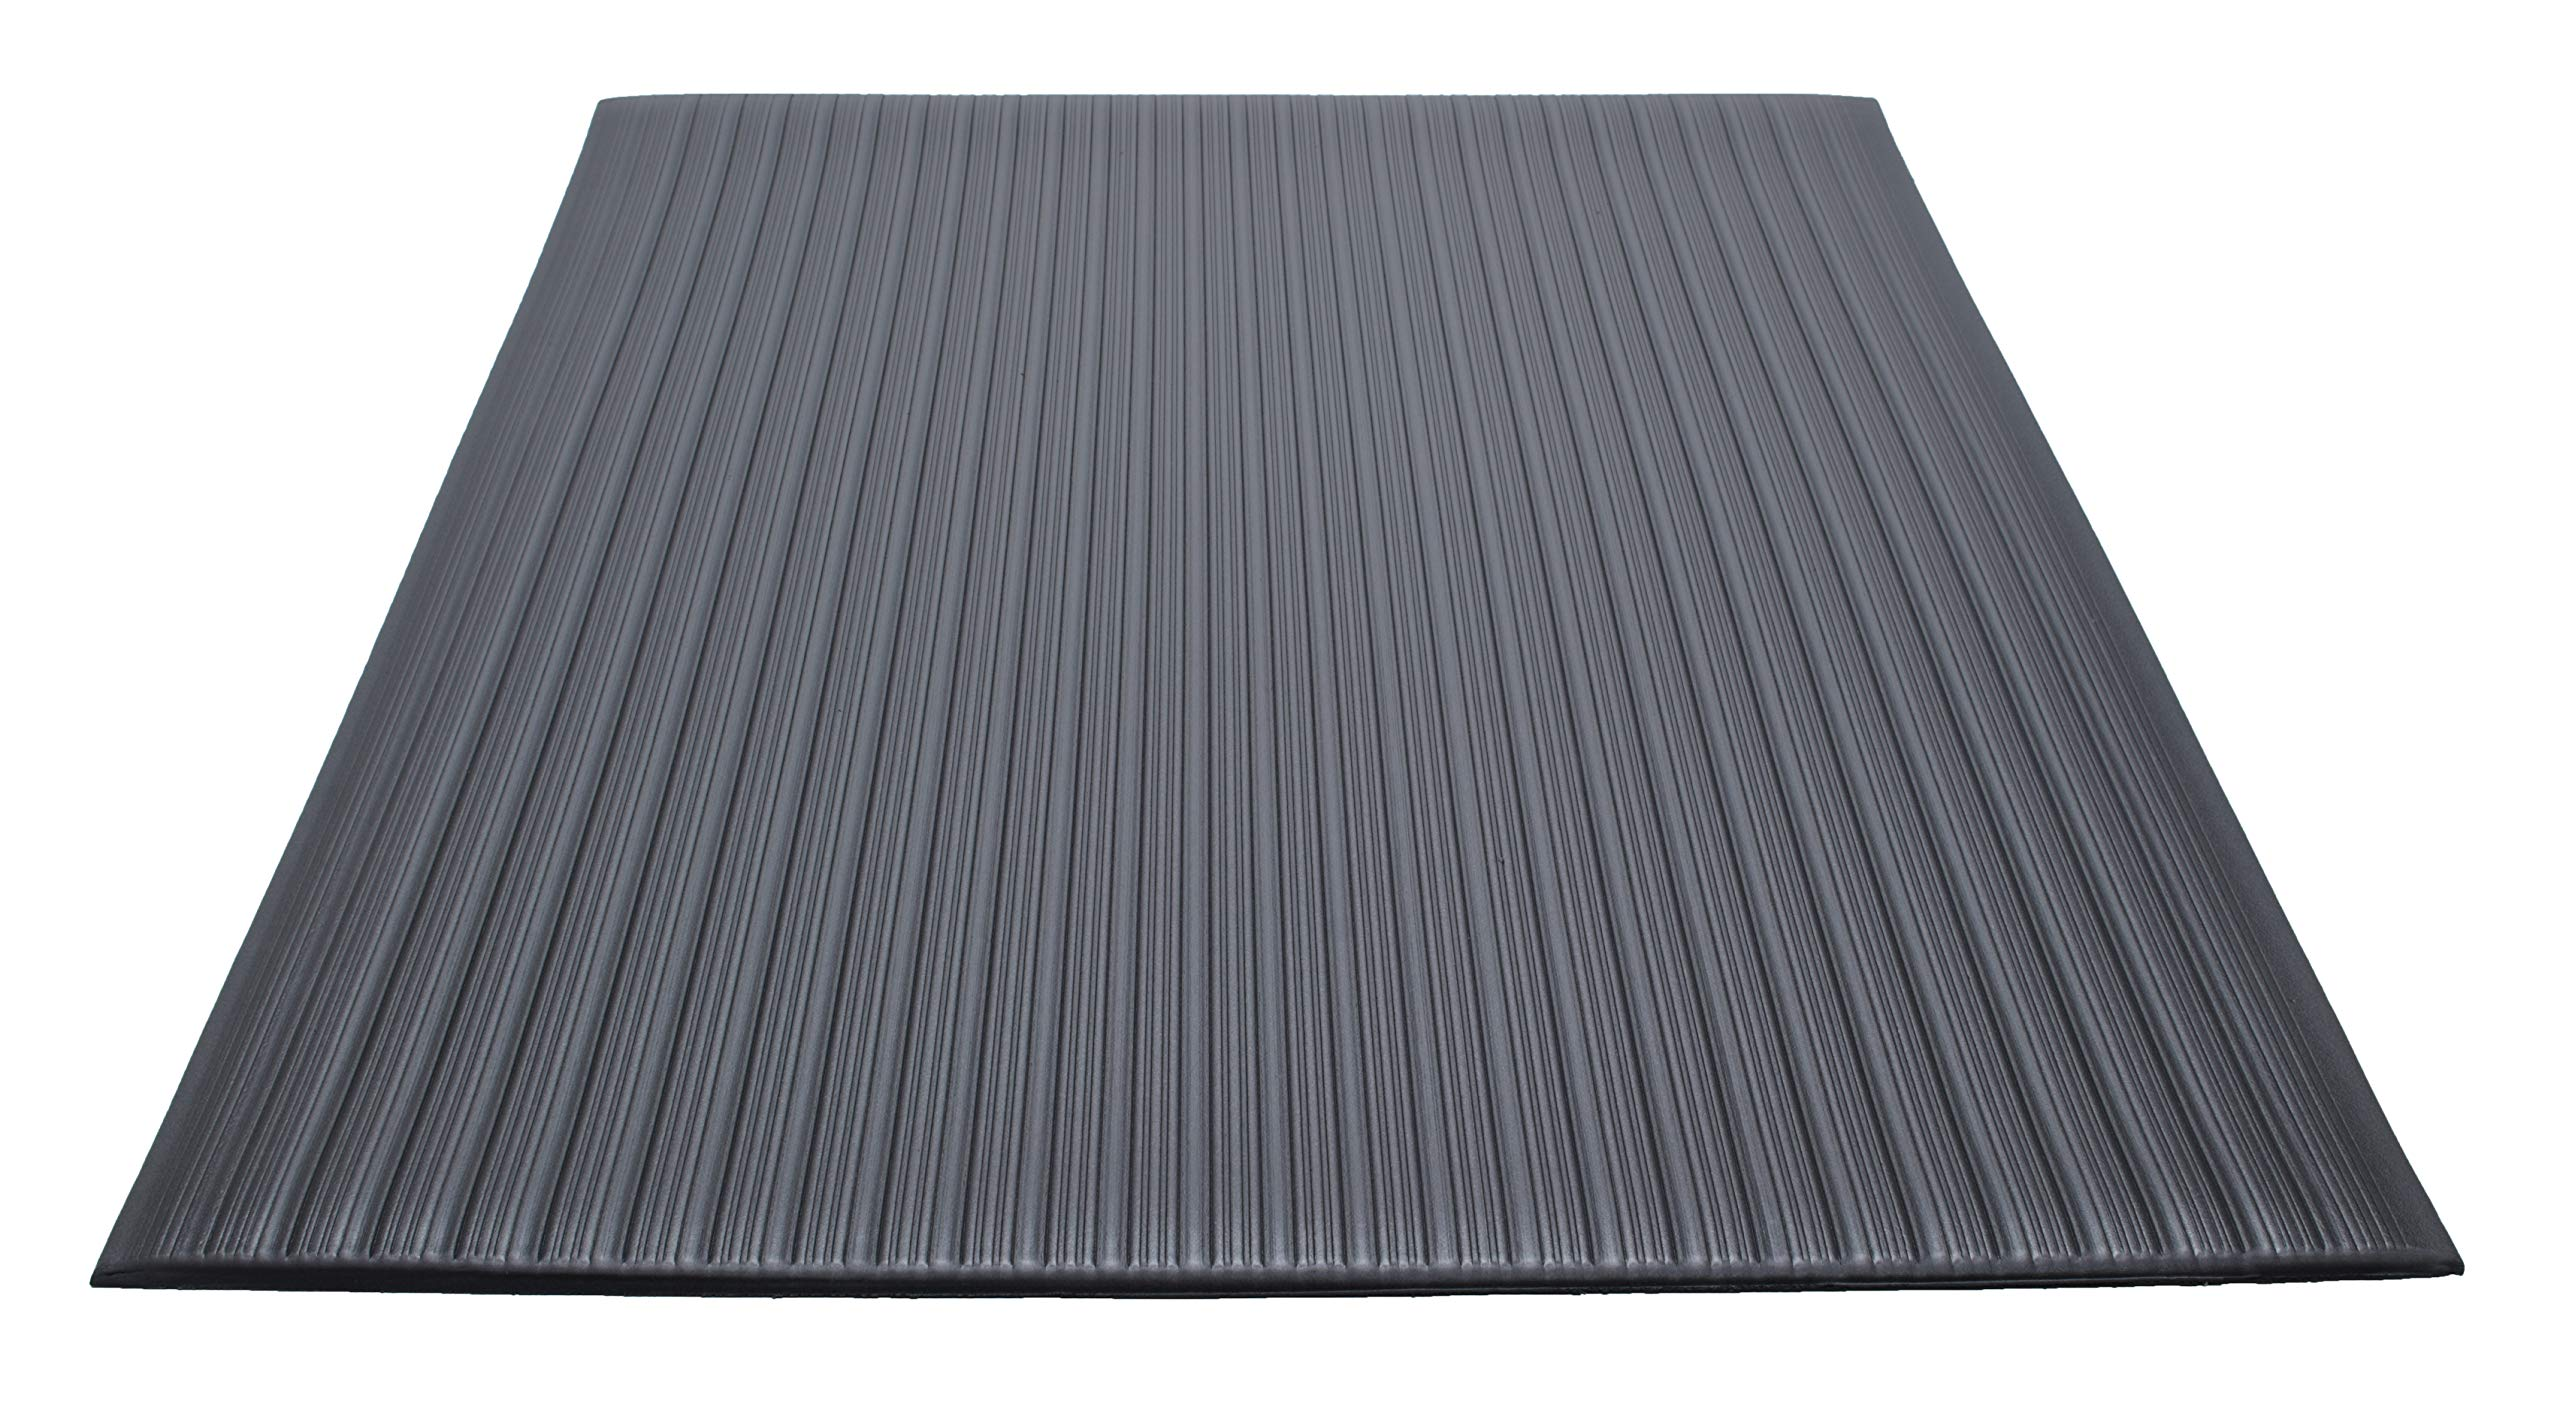 Guardian Air Step  Anti-Fatigue Floor Mat, Vinyl, 2'x3', Black, Reduces fatigue and discomfort, Can be easily cut to fit any space by Guardian